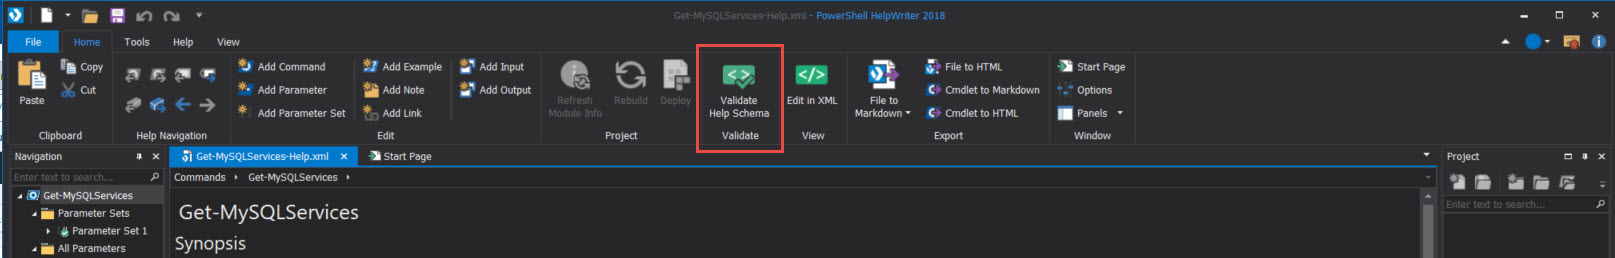 PowerShell HelpWriter 2018: Create a Single Function Help File